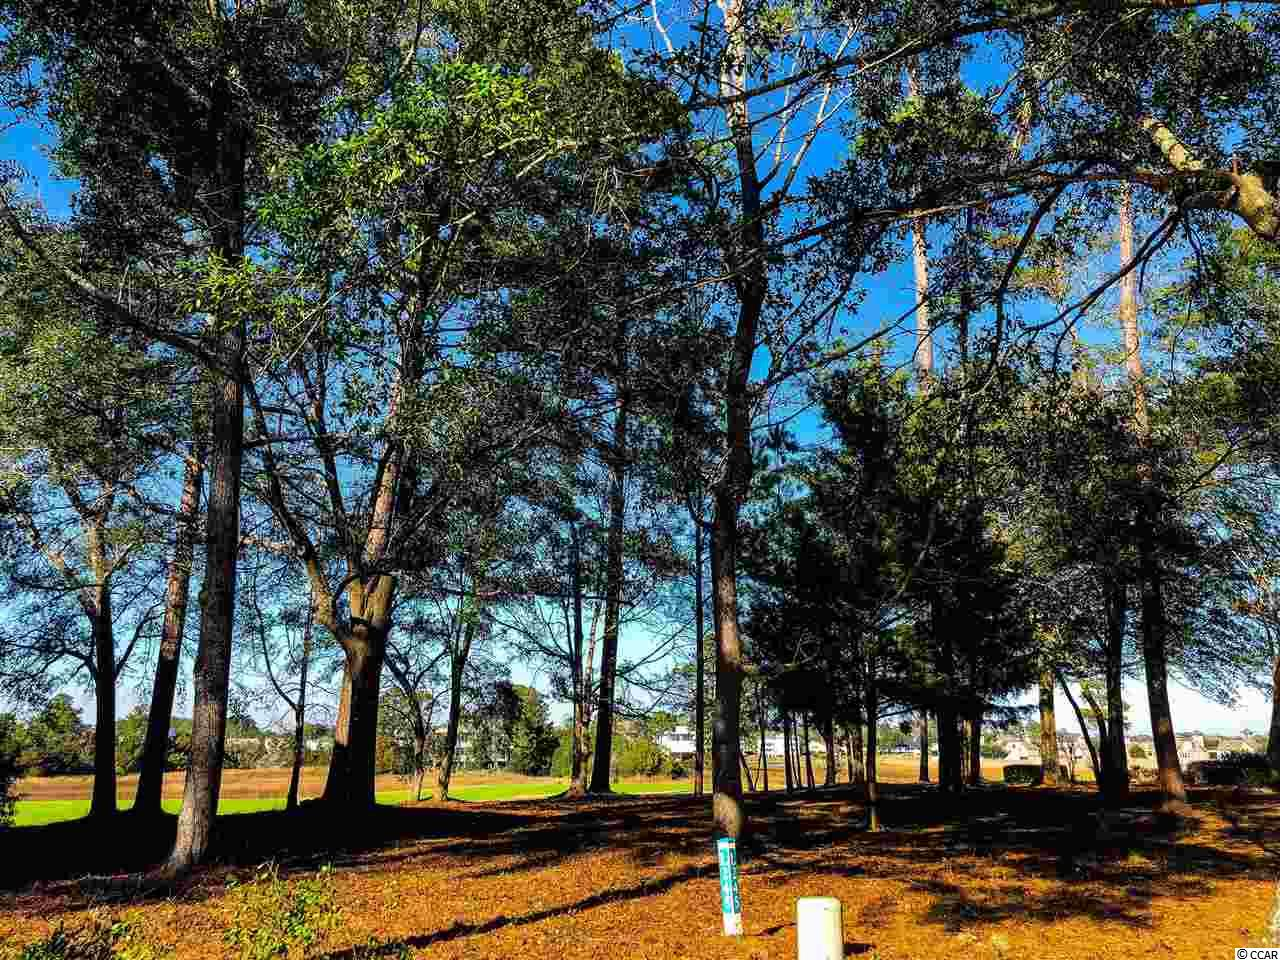 Are you looking to build your DREAM home but can't seem to find the perfect lot? Look no further! This DOUBLE LOT in the beautiful golf course community Tidewater Plantation has it all - Golf Course Views, Marsh Views, unobstructed views of the Intracoastal Waterway, and Luxurious Coastal Living! Nestled at the end of a cul-de-sac overlooking the 8th and 9th Fairway in ultra-exclusive Tidewater Plantation, you will enjoy world class amenities and stunning nature vistas with all the convenience of North Myrtle Beach! Bring your own builder with no time frame to build! Tidewater is gated with 24 hour security and offers THE BEST of the best - resort style pools and fitness facilities, award-winning golf course, tennis courts, year round social events, nature trails along the Marsh, a private Oceanfront Clubhouse, and MORE! All while being just minutes to the best beaches, restaurants, entertainment, shopping, medical centers, and more! Tidewater Plantation is truly a lifestyle community that is completely unique and this is the ONLY double-lot available so don't delay - grab your piece of North Myrtle Beach paradise today!